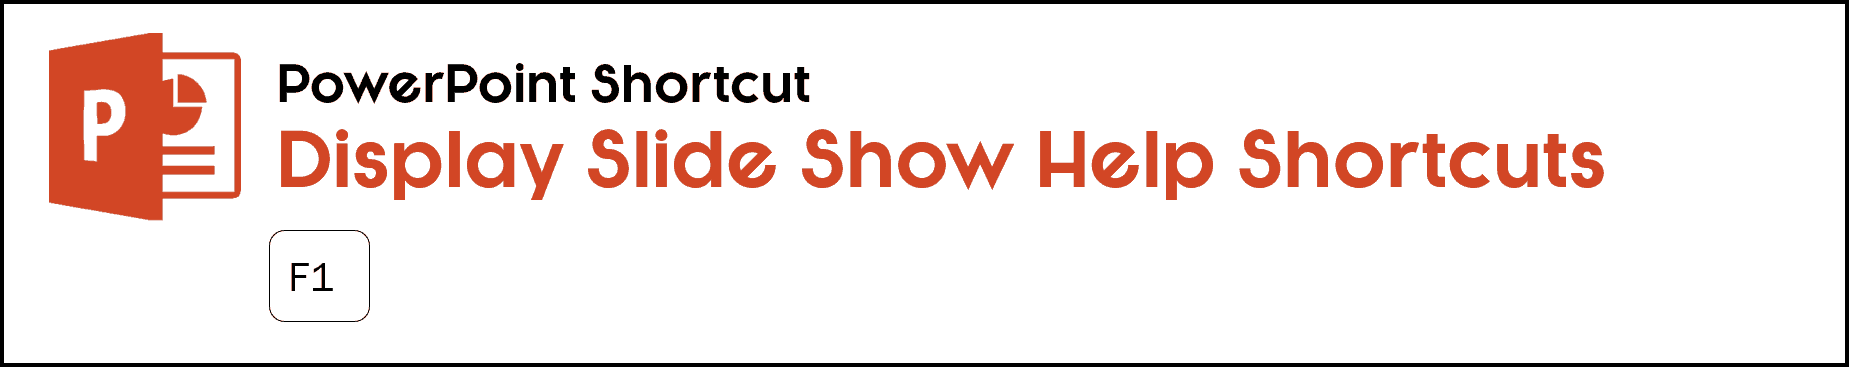 To display your slide show help shortcuts, hit F1 on your keyboard in slide show mode